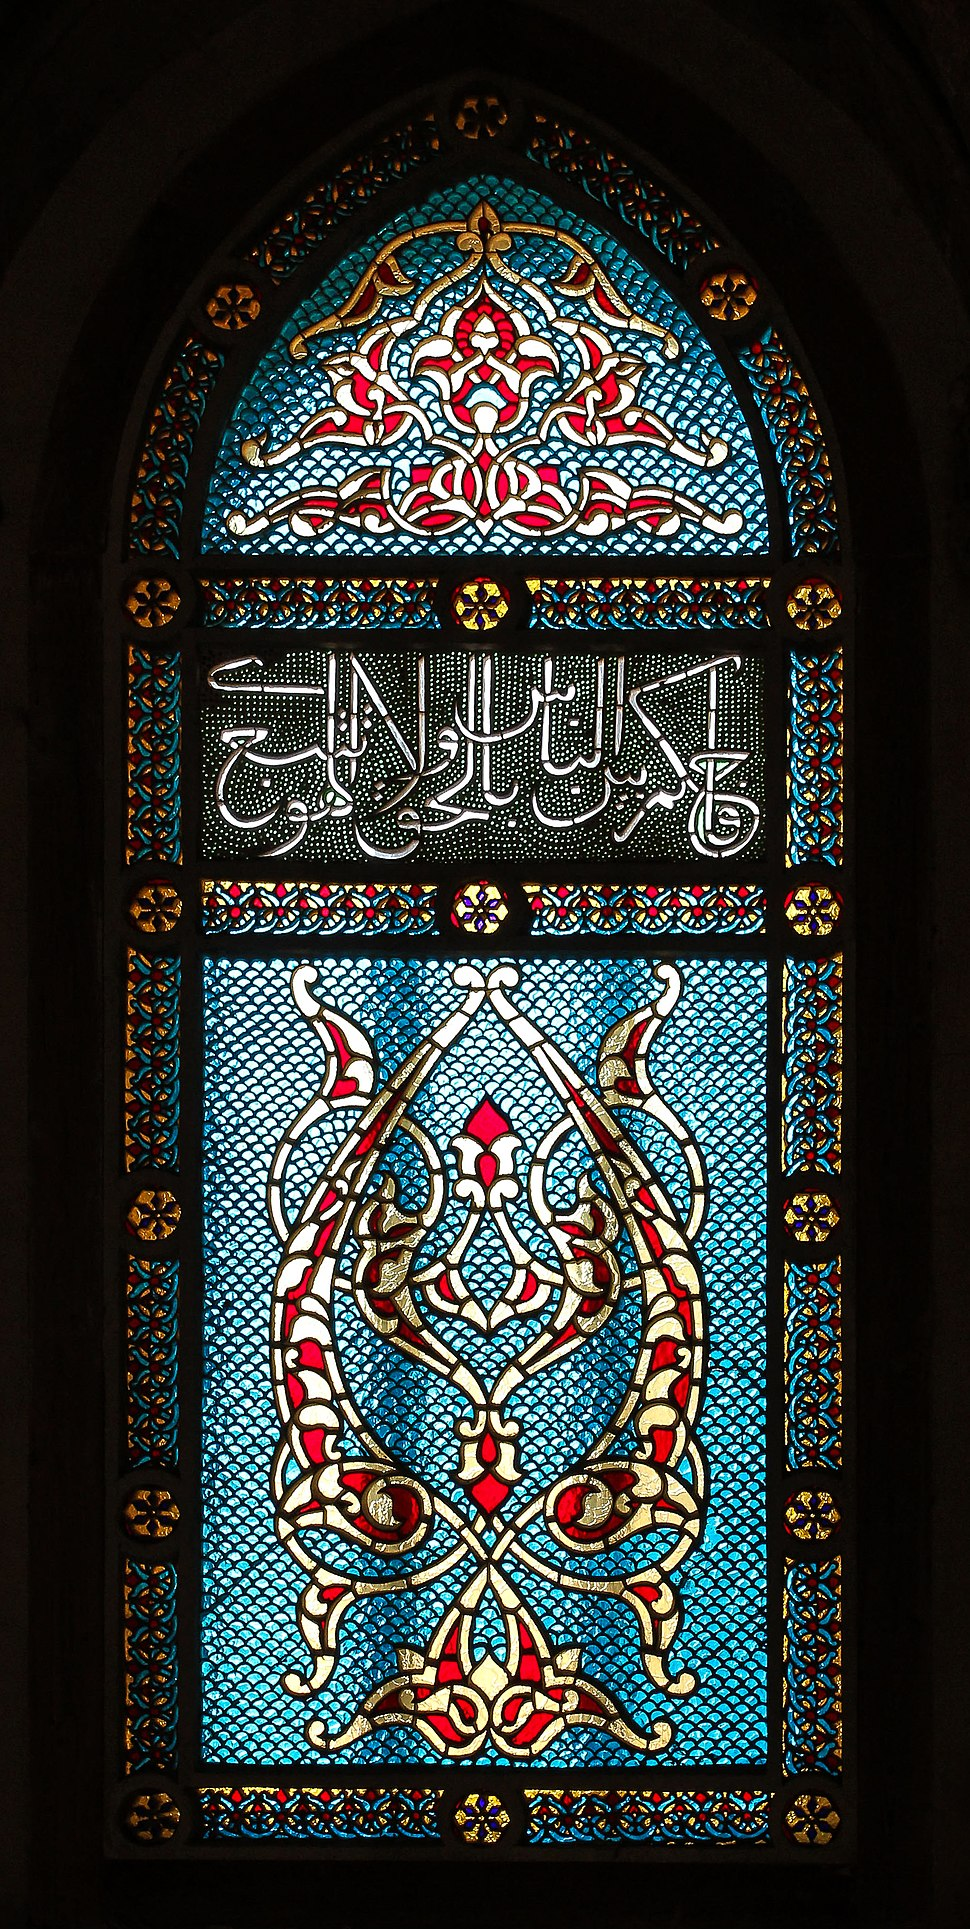 Stained glass window in a mosque in the Old City of Jerusalem (12393551704)